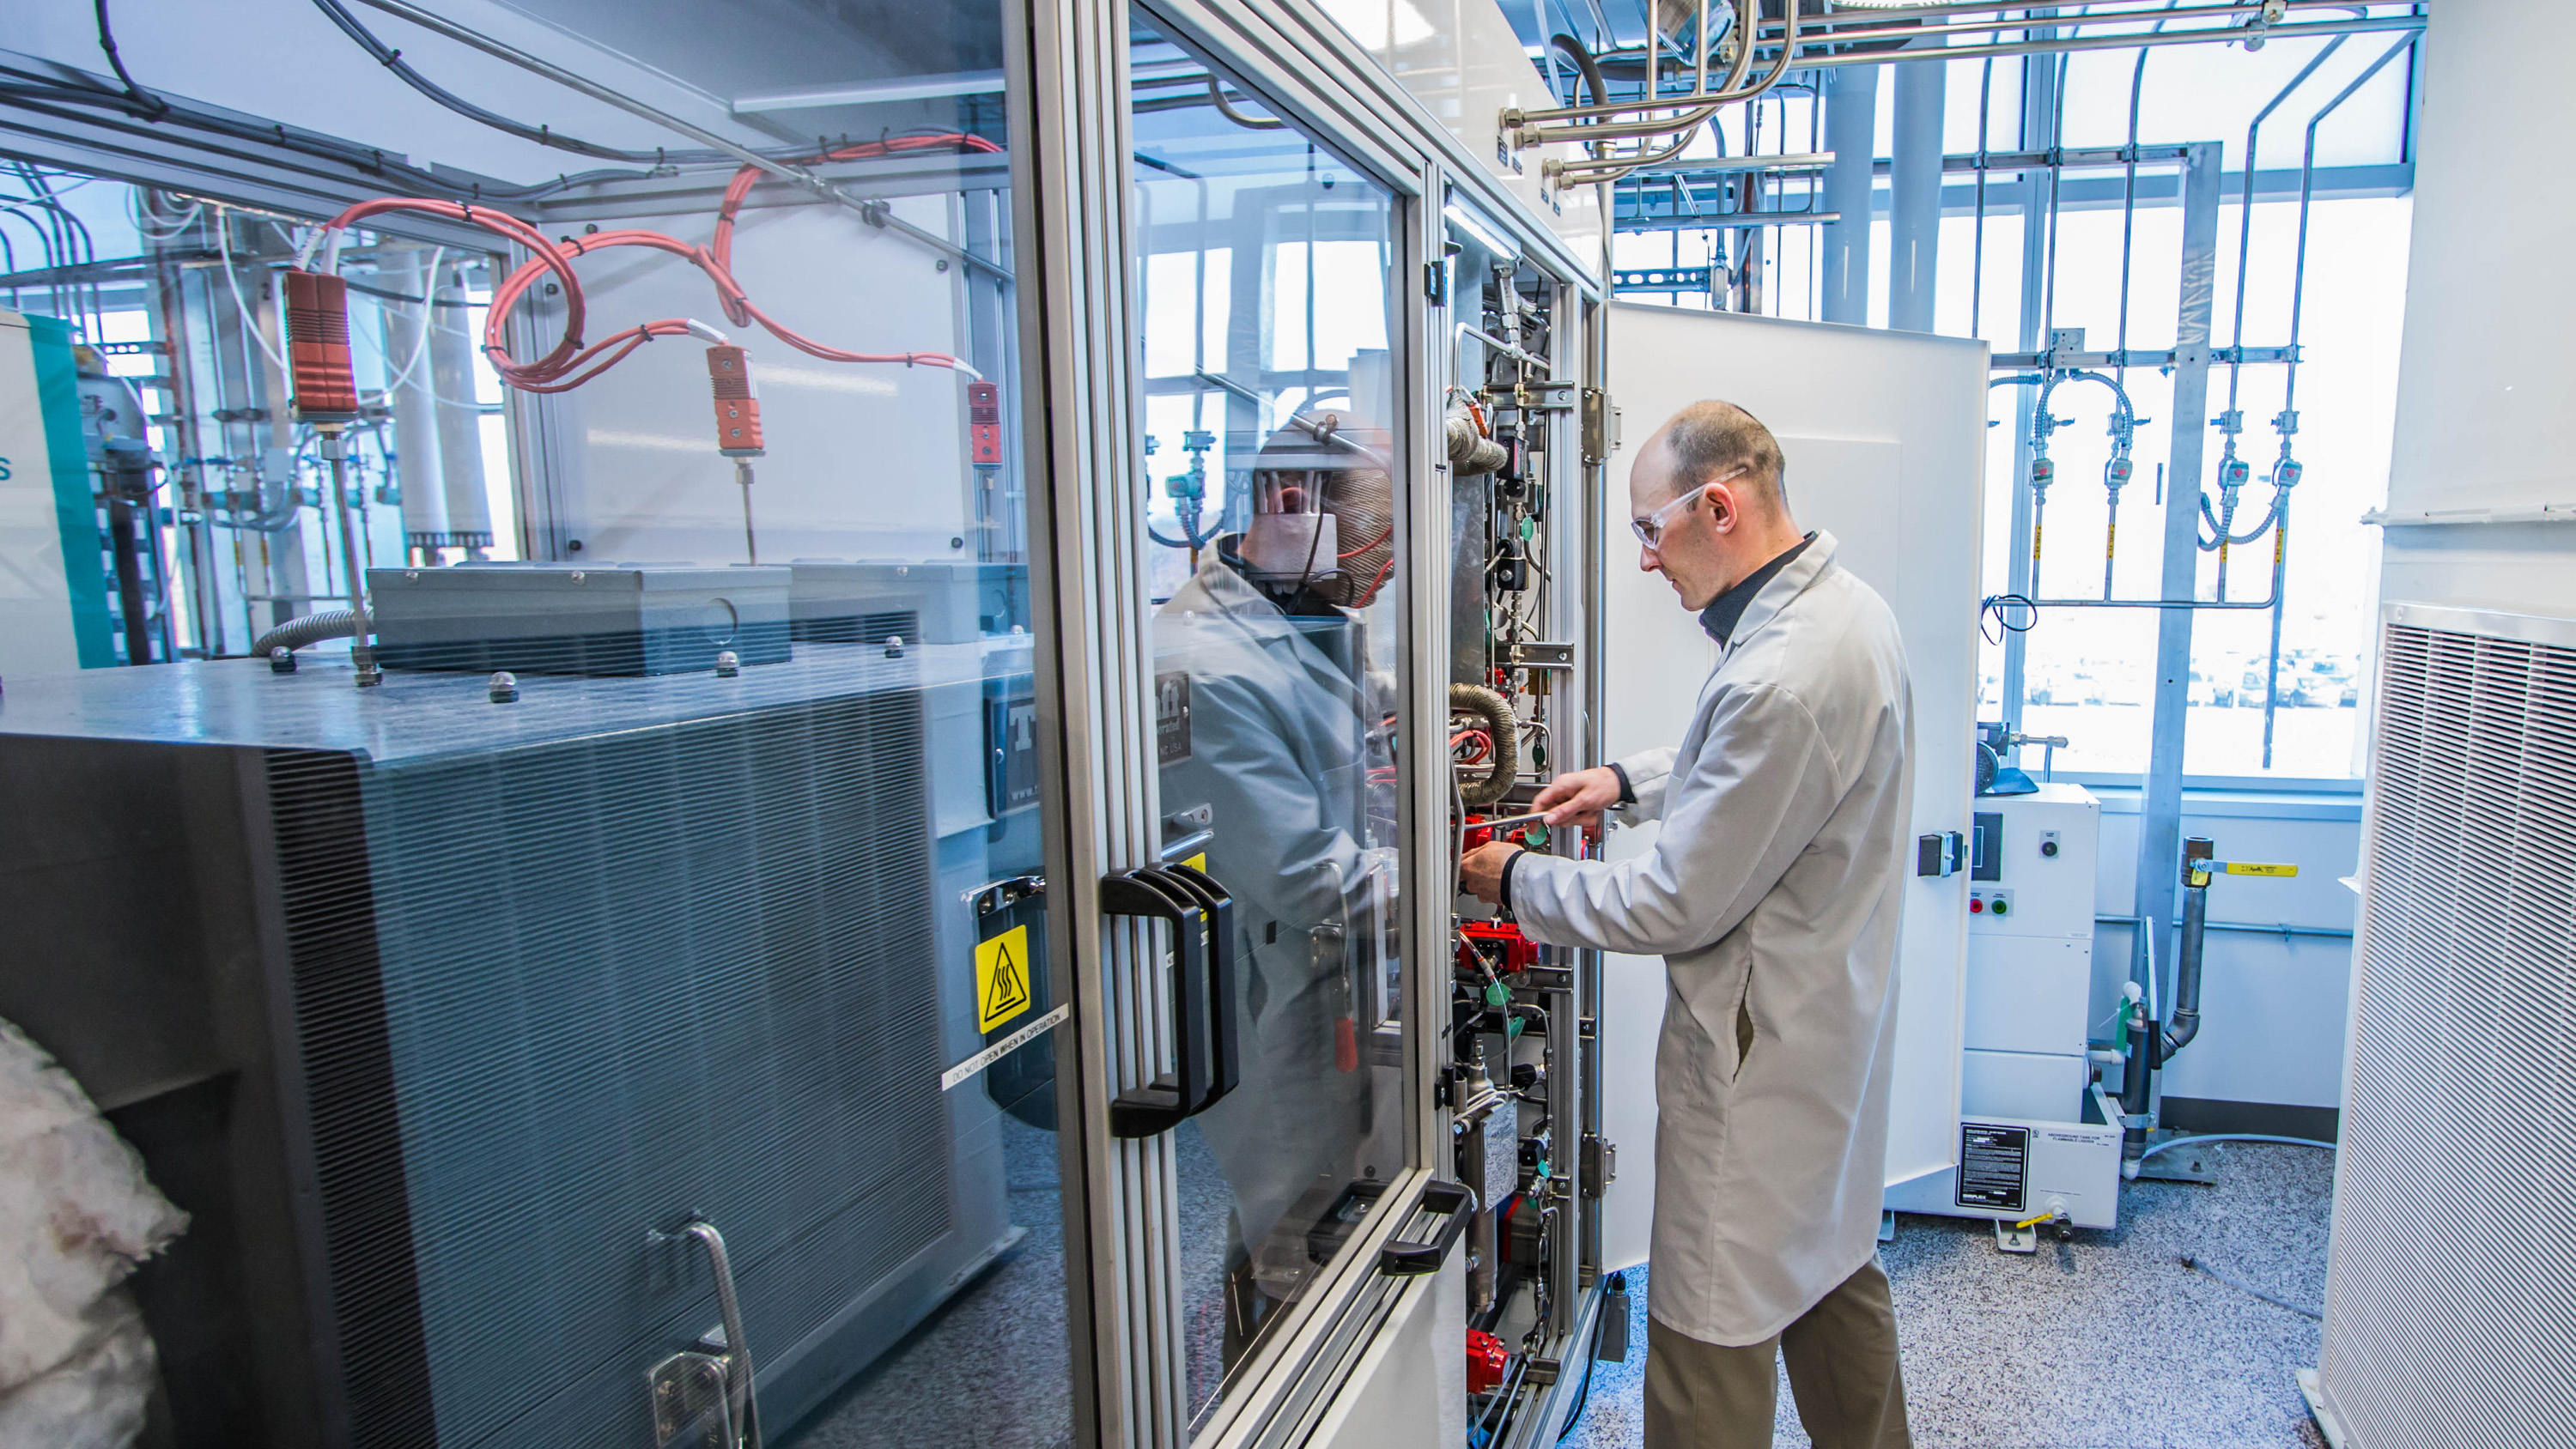 Man in lab coat working on a panel in a fuel cell lab